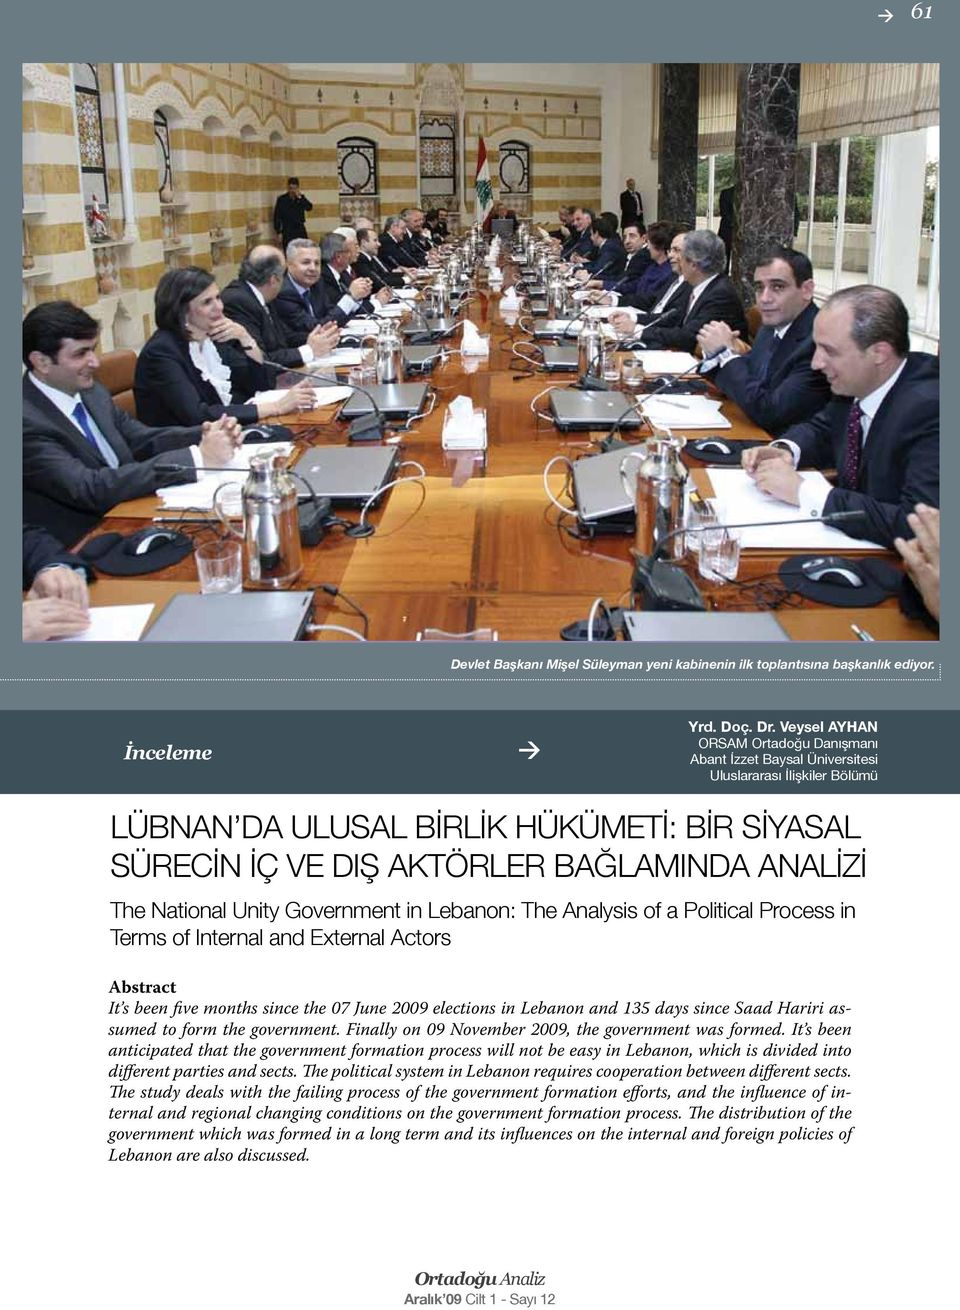 National Unity Government in Lebanon: The Analysis of a Political Process in Terms of Internal and External Actors Abstract It s been five months since the 07 June 2009 elections in Lebanon and 135